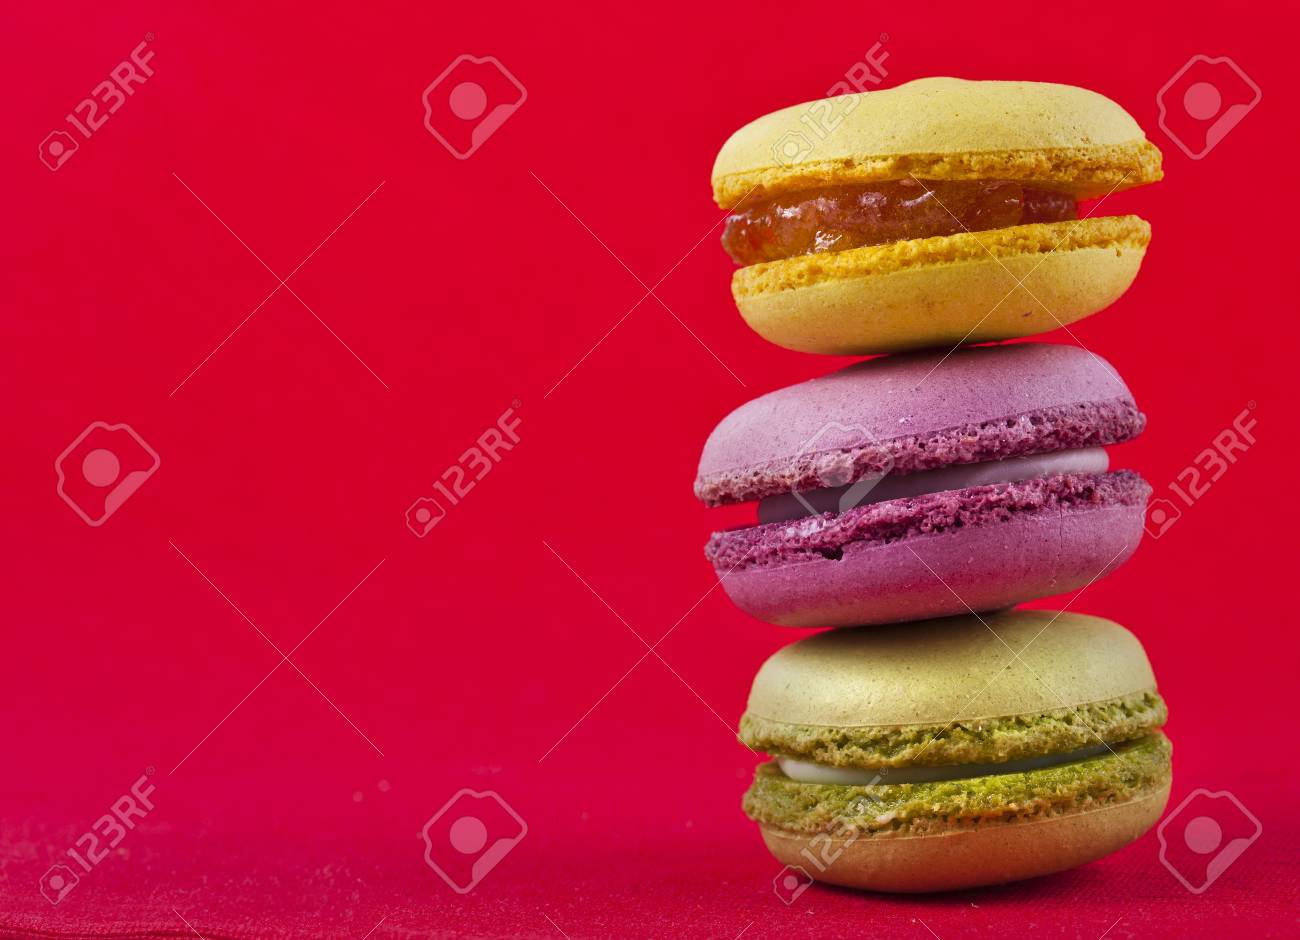 Border of Colorful macaroons on a red background Stock Photo - 18374788